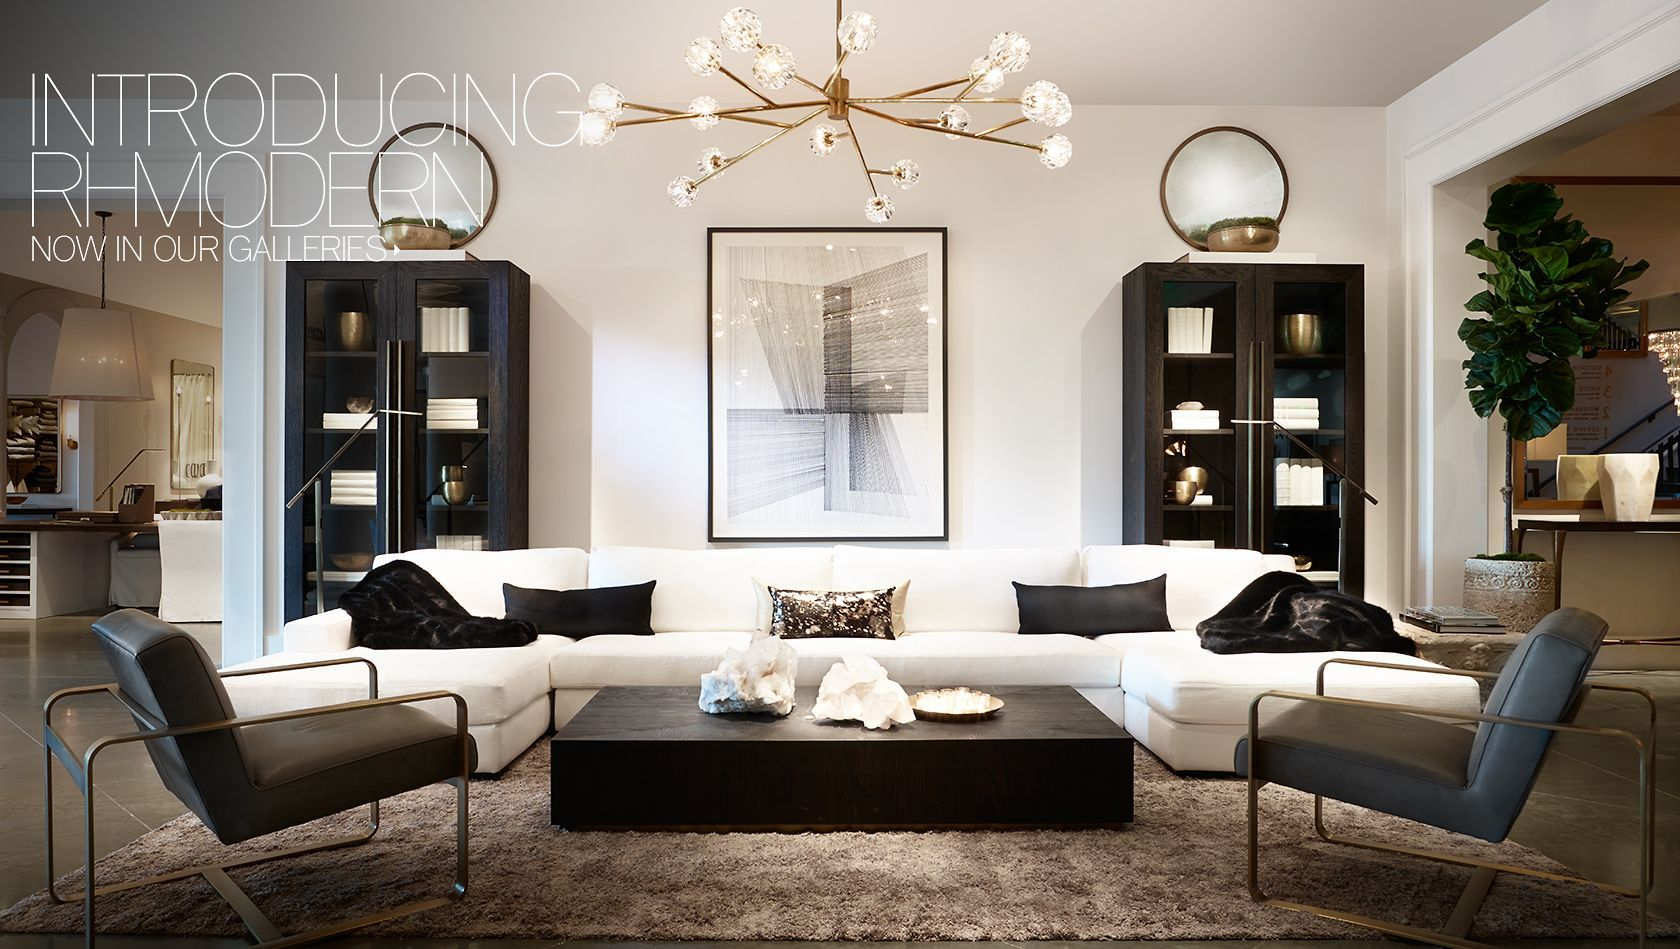 Introducing Rh Modern Now In Our Galleries Living Rooms Pinterest